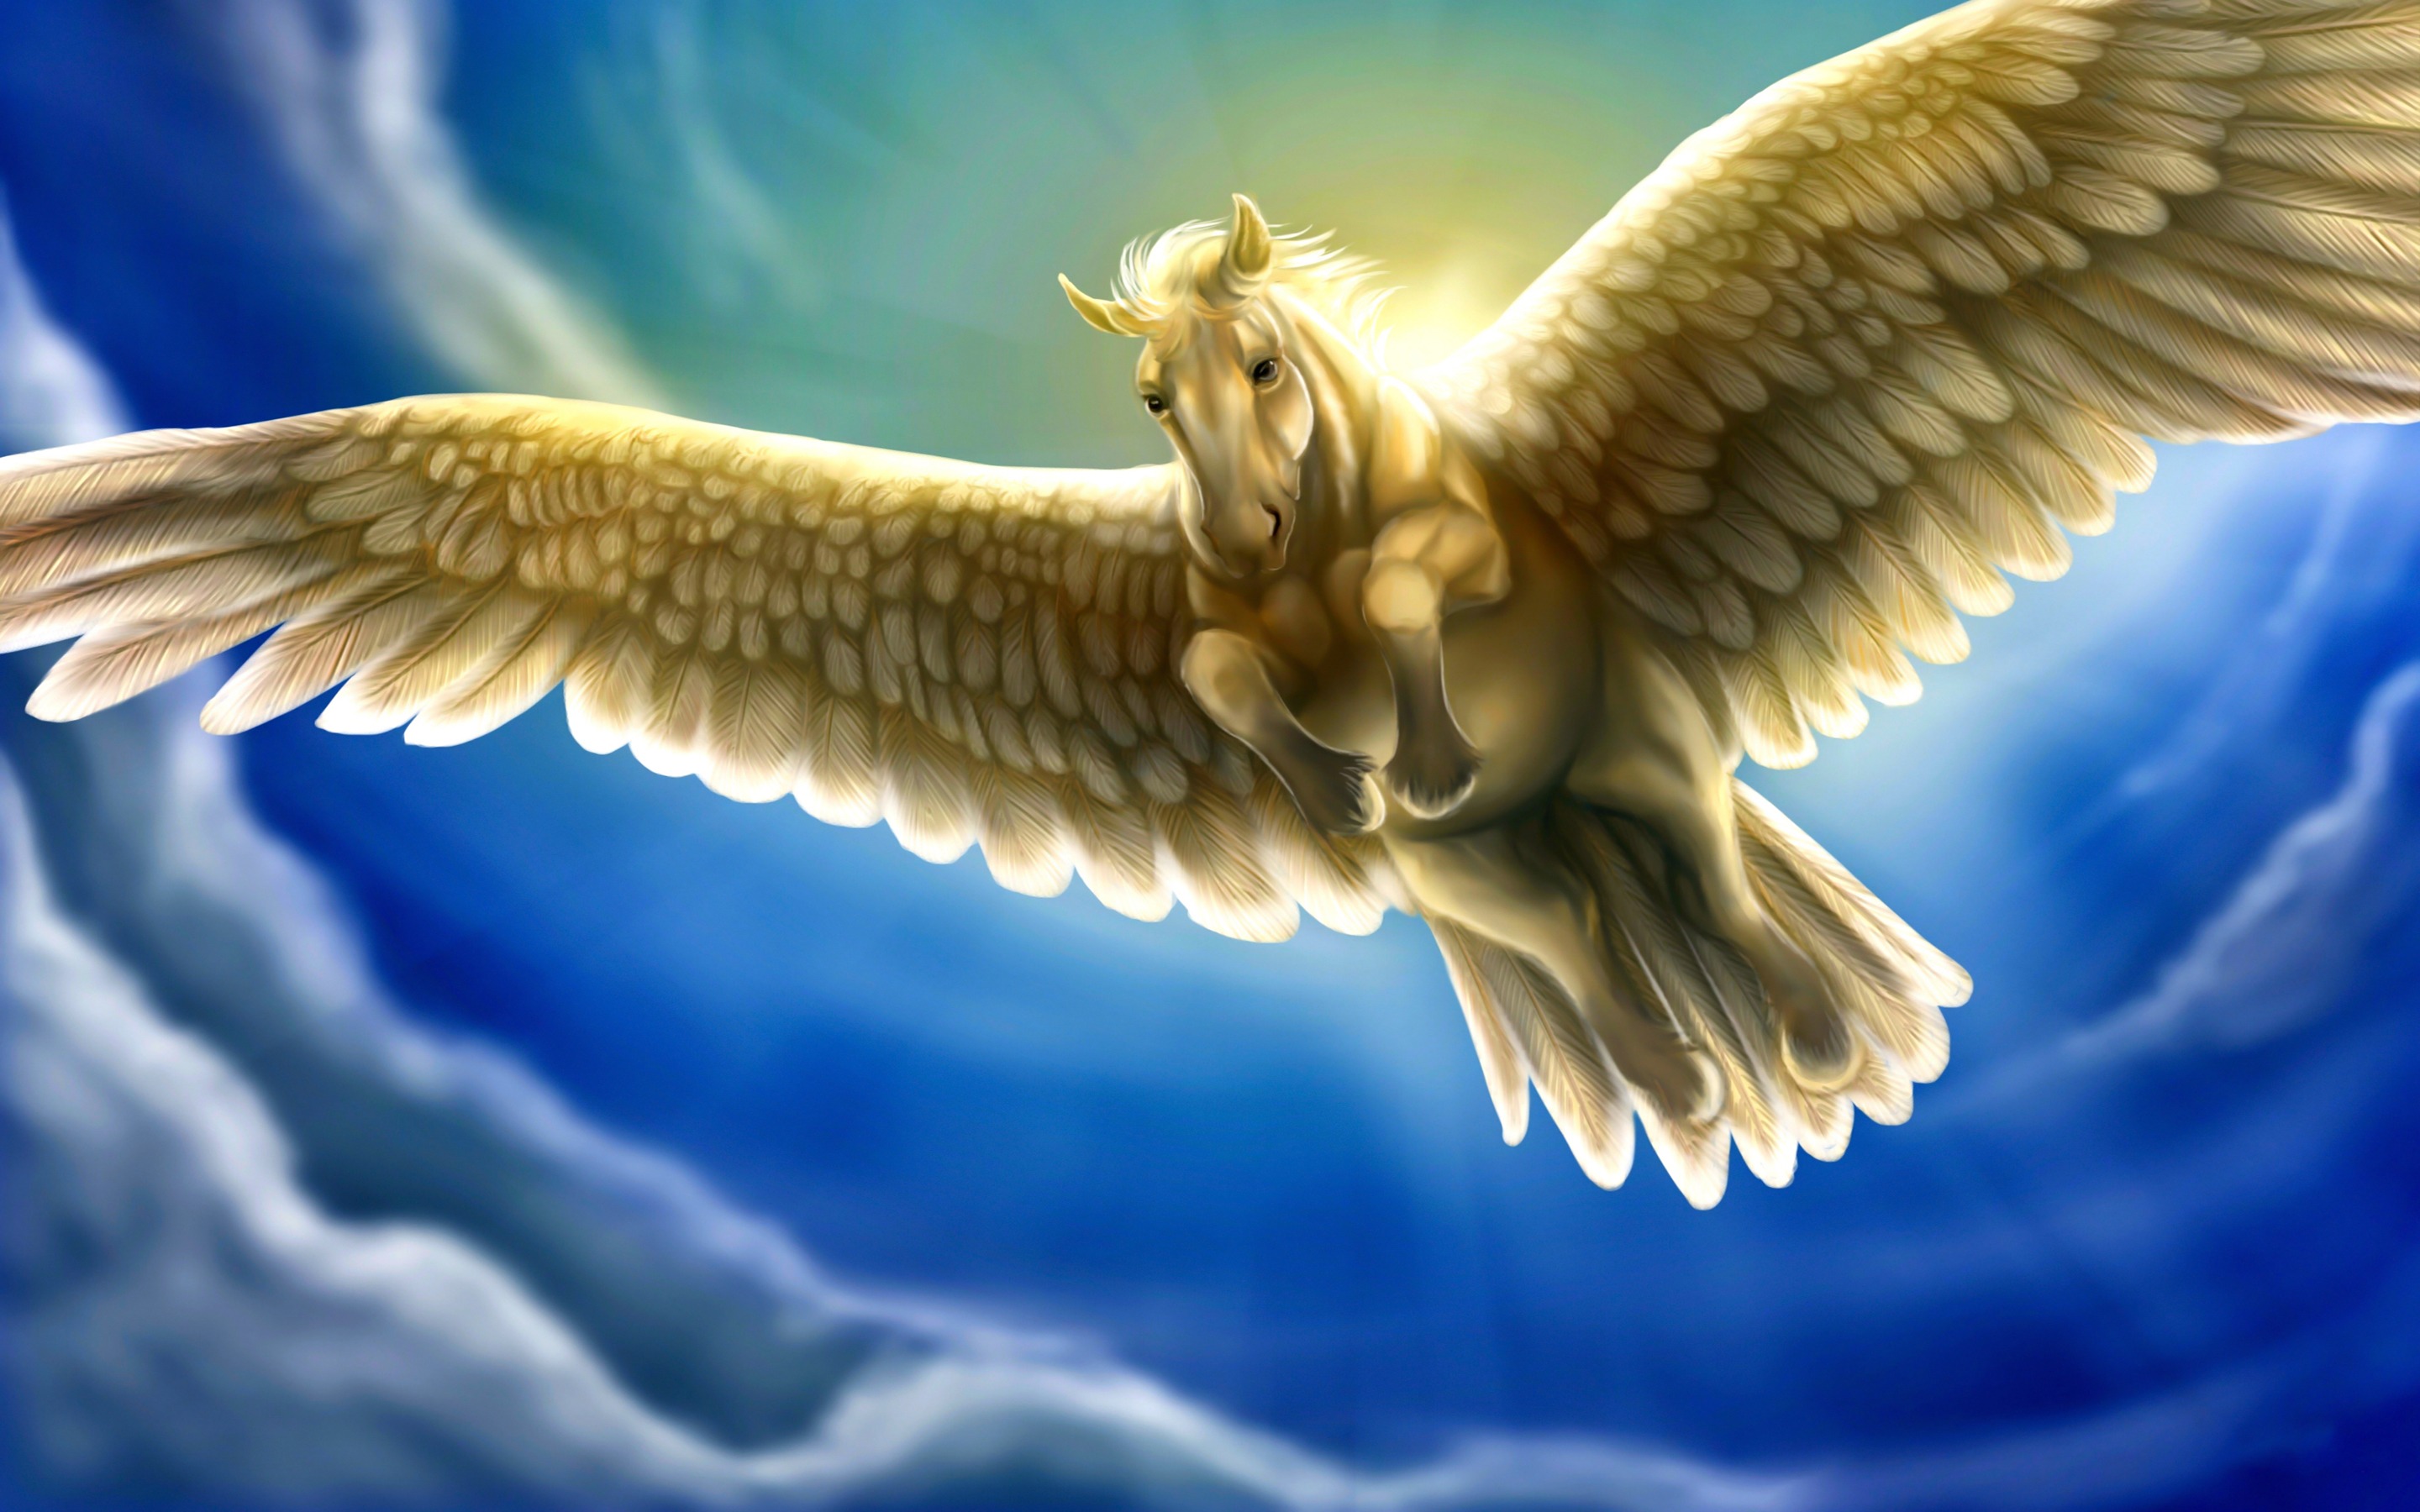 Bright Hd Wallpapers For Iphone Heavenly White Horse With Wings Pegasus Fantasy Sky Blue